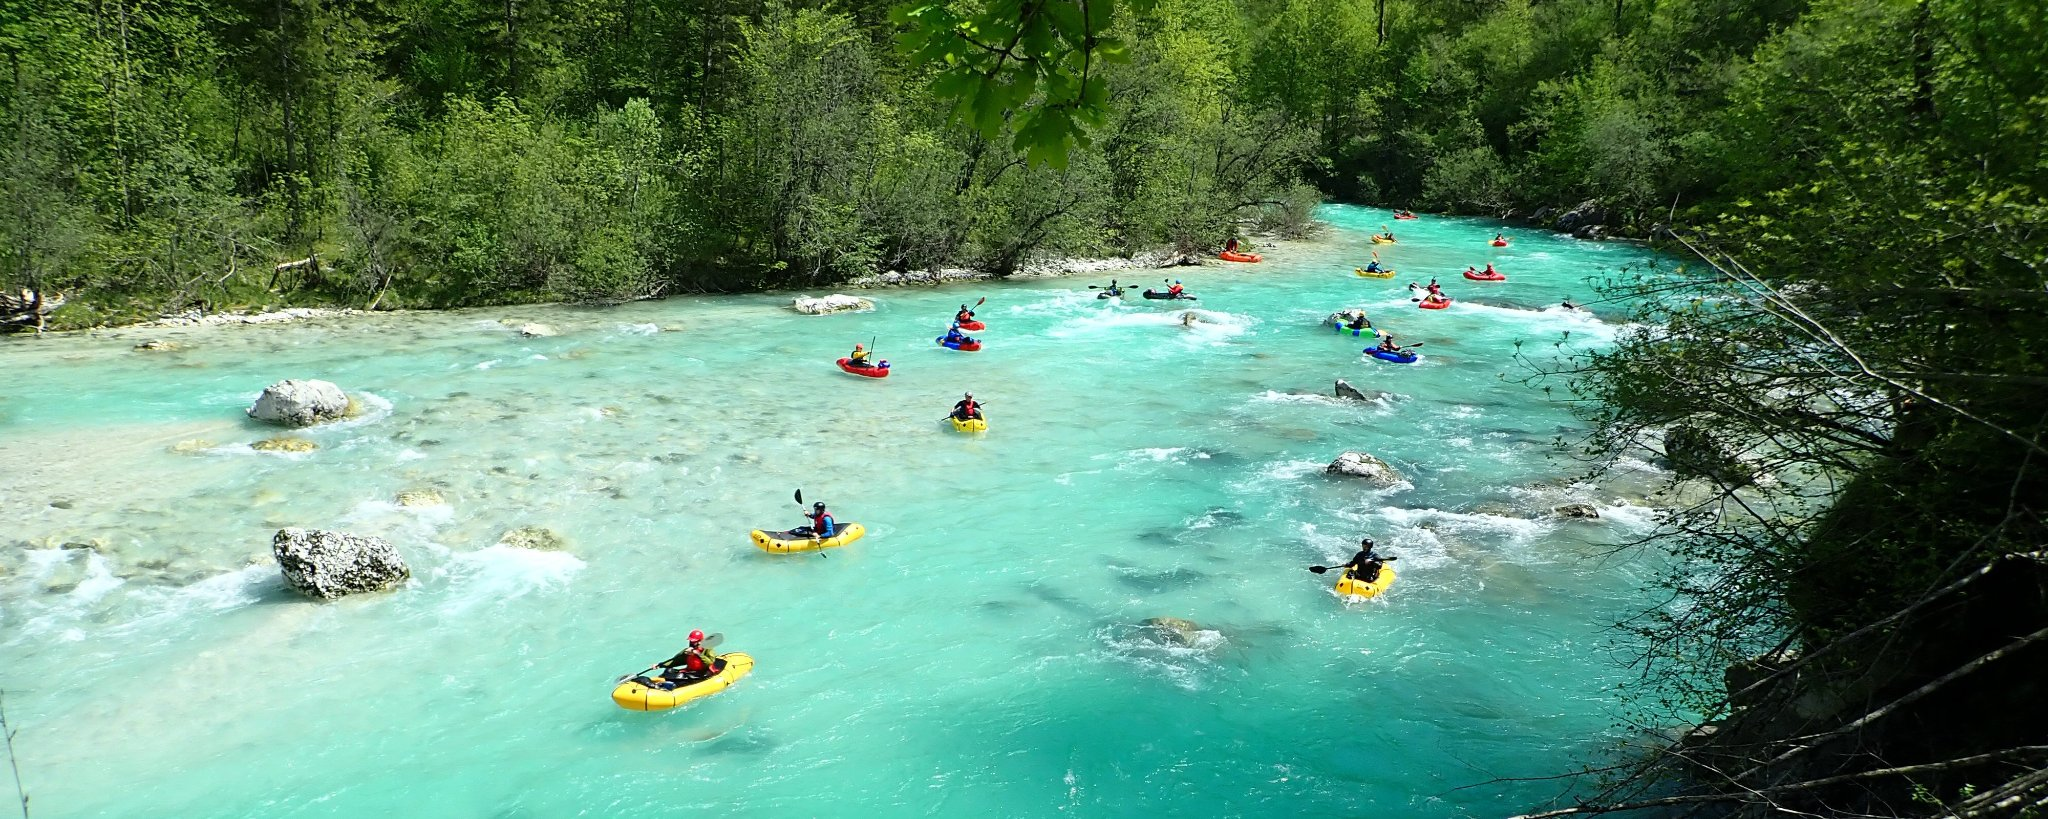 European Packrafting Meet up Soca River Slovenia